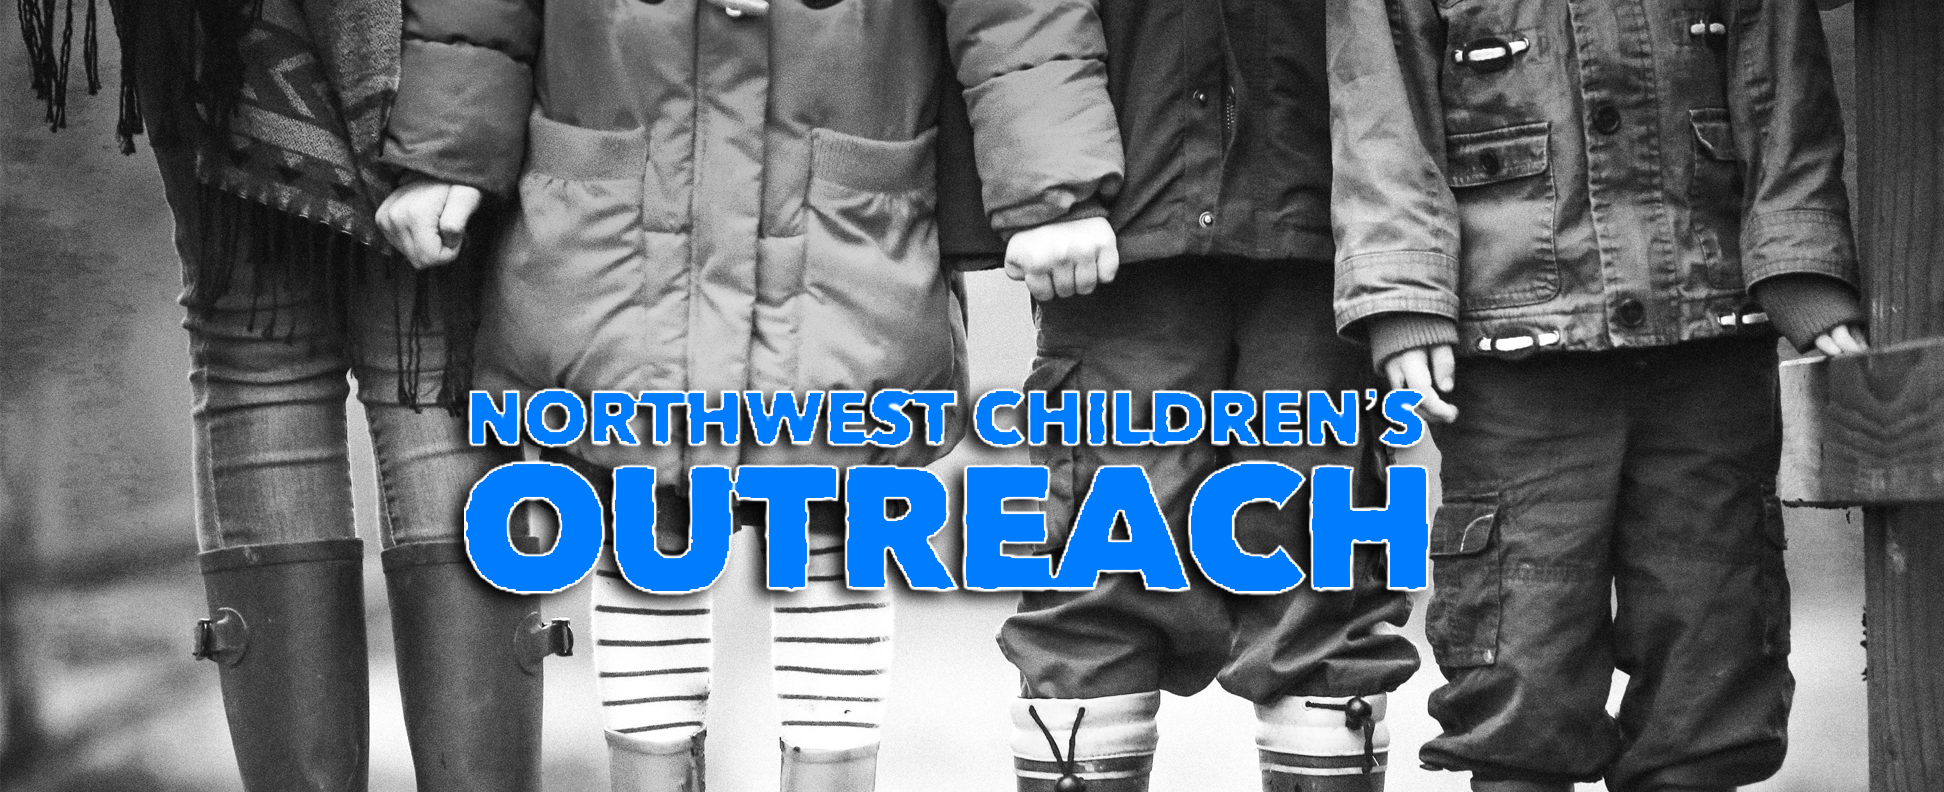 NW Children's Outreach WEDNESDAY - JULY 24TH